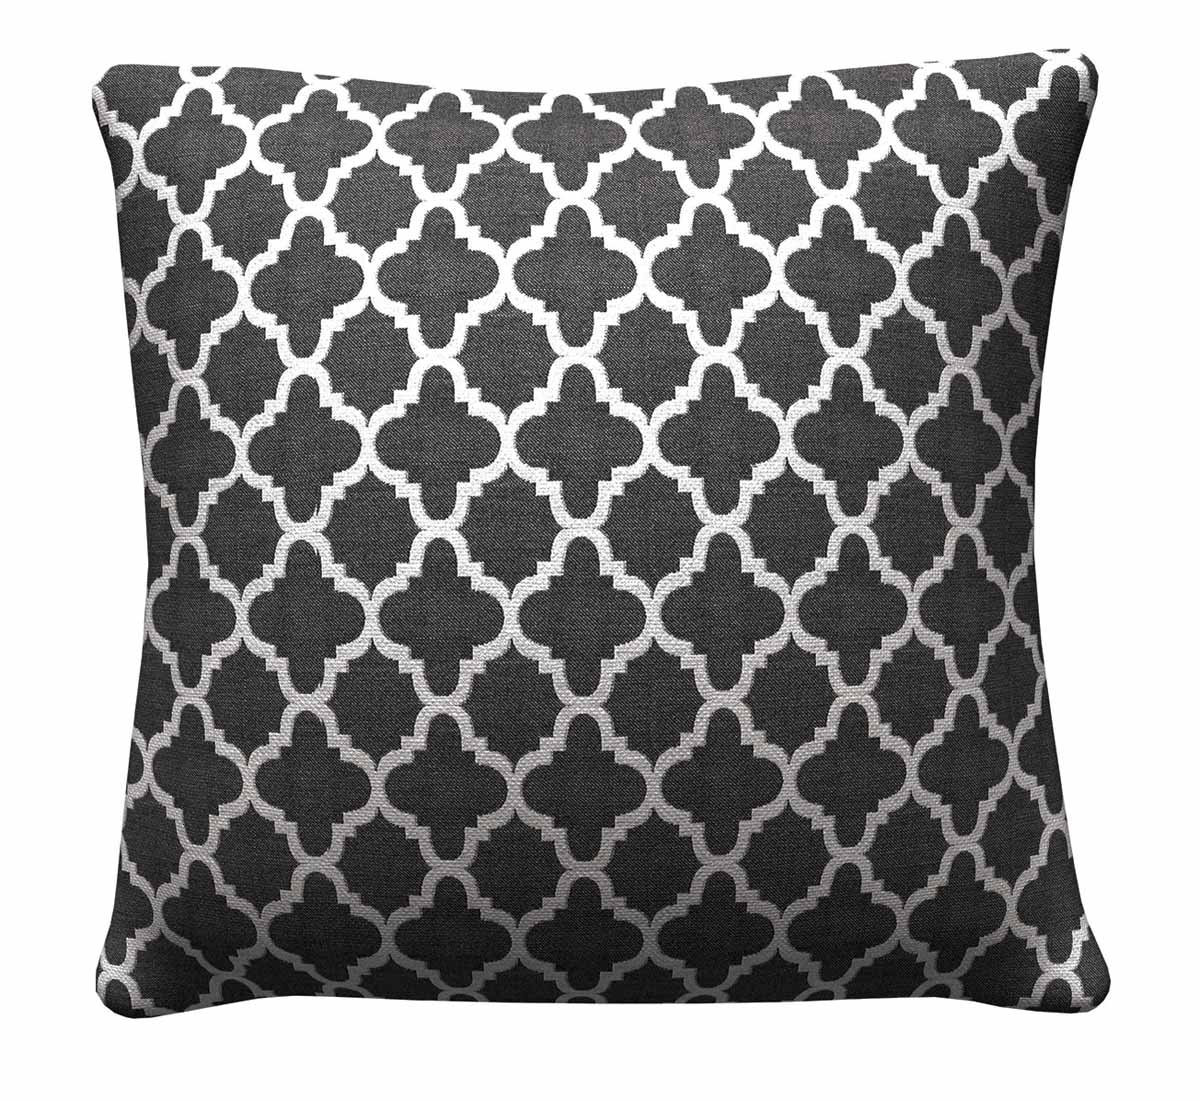 905314 Black Quatrefoil Pillow